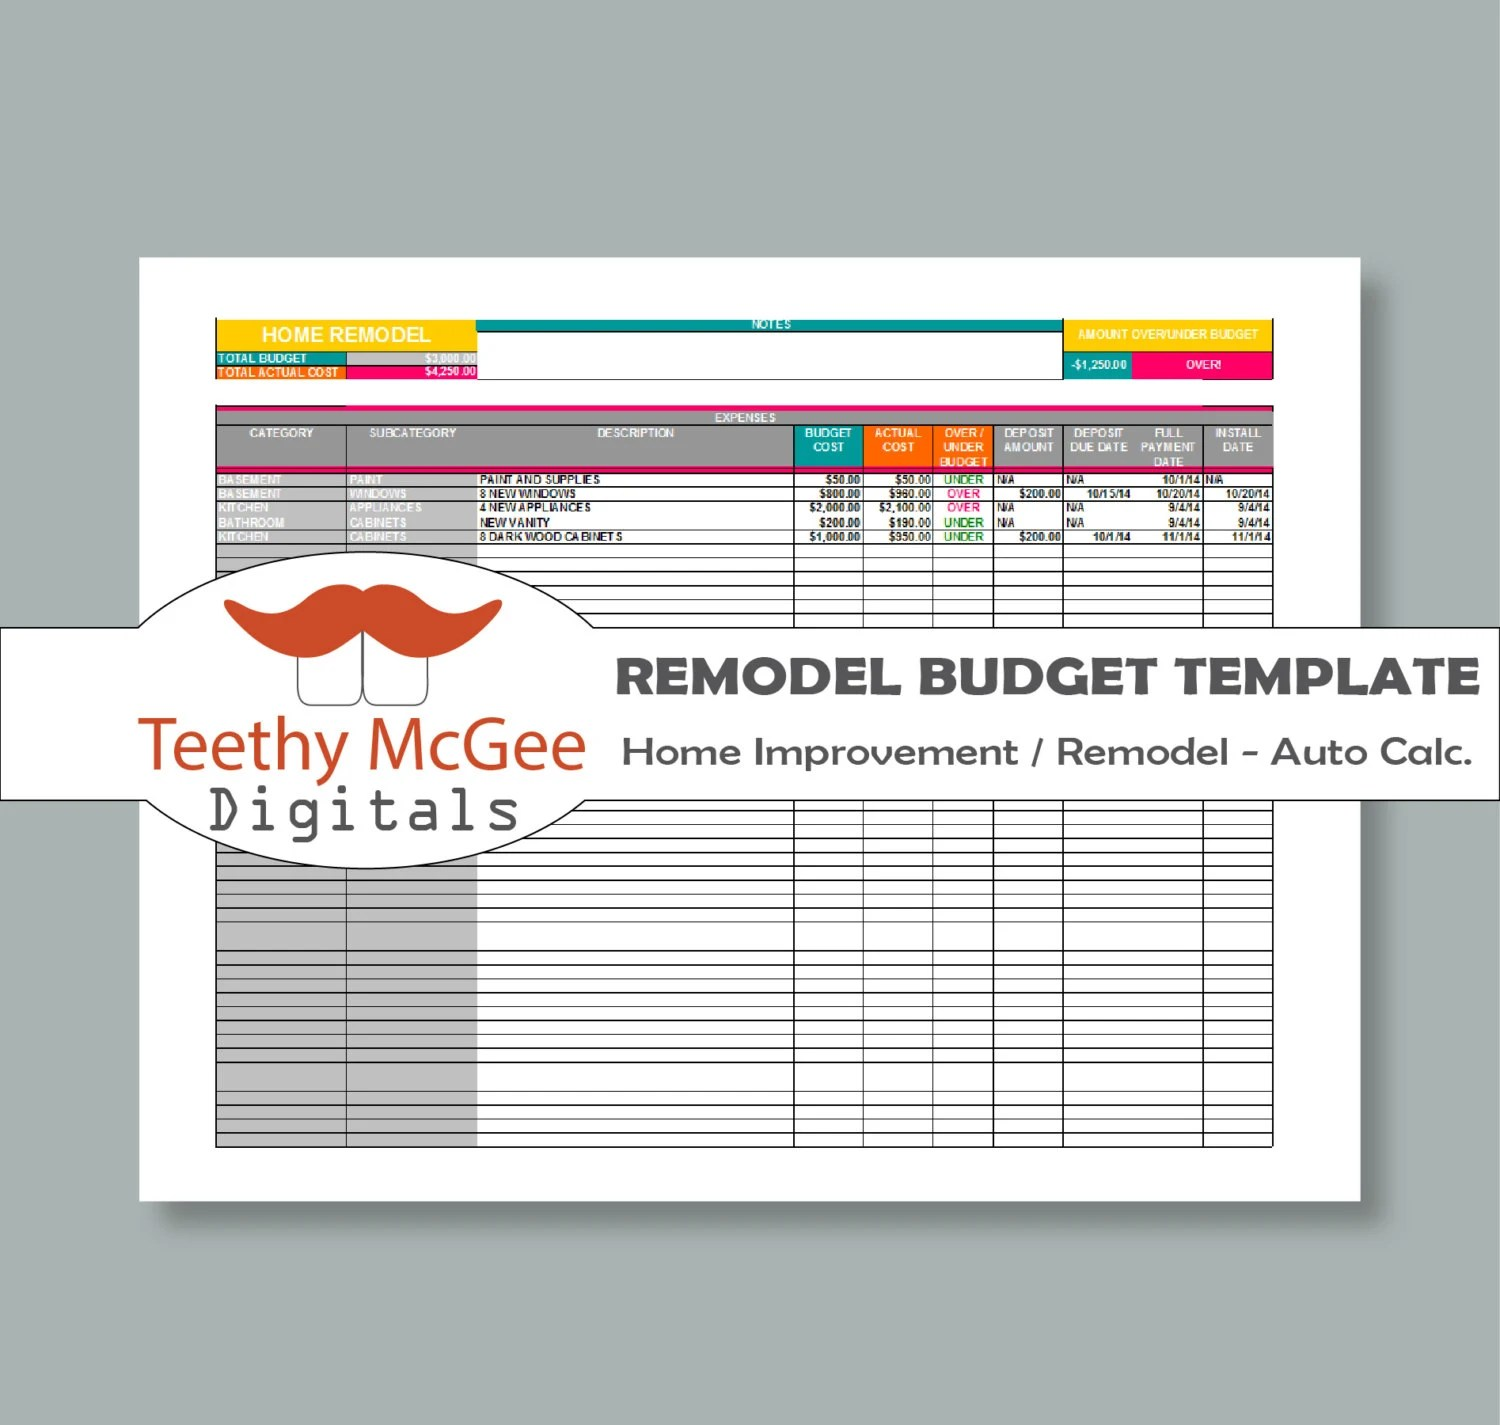 Home Improvement remodel Budget Template Instant Download Etsy